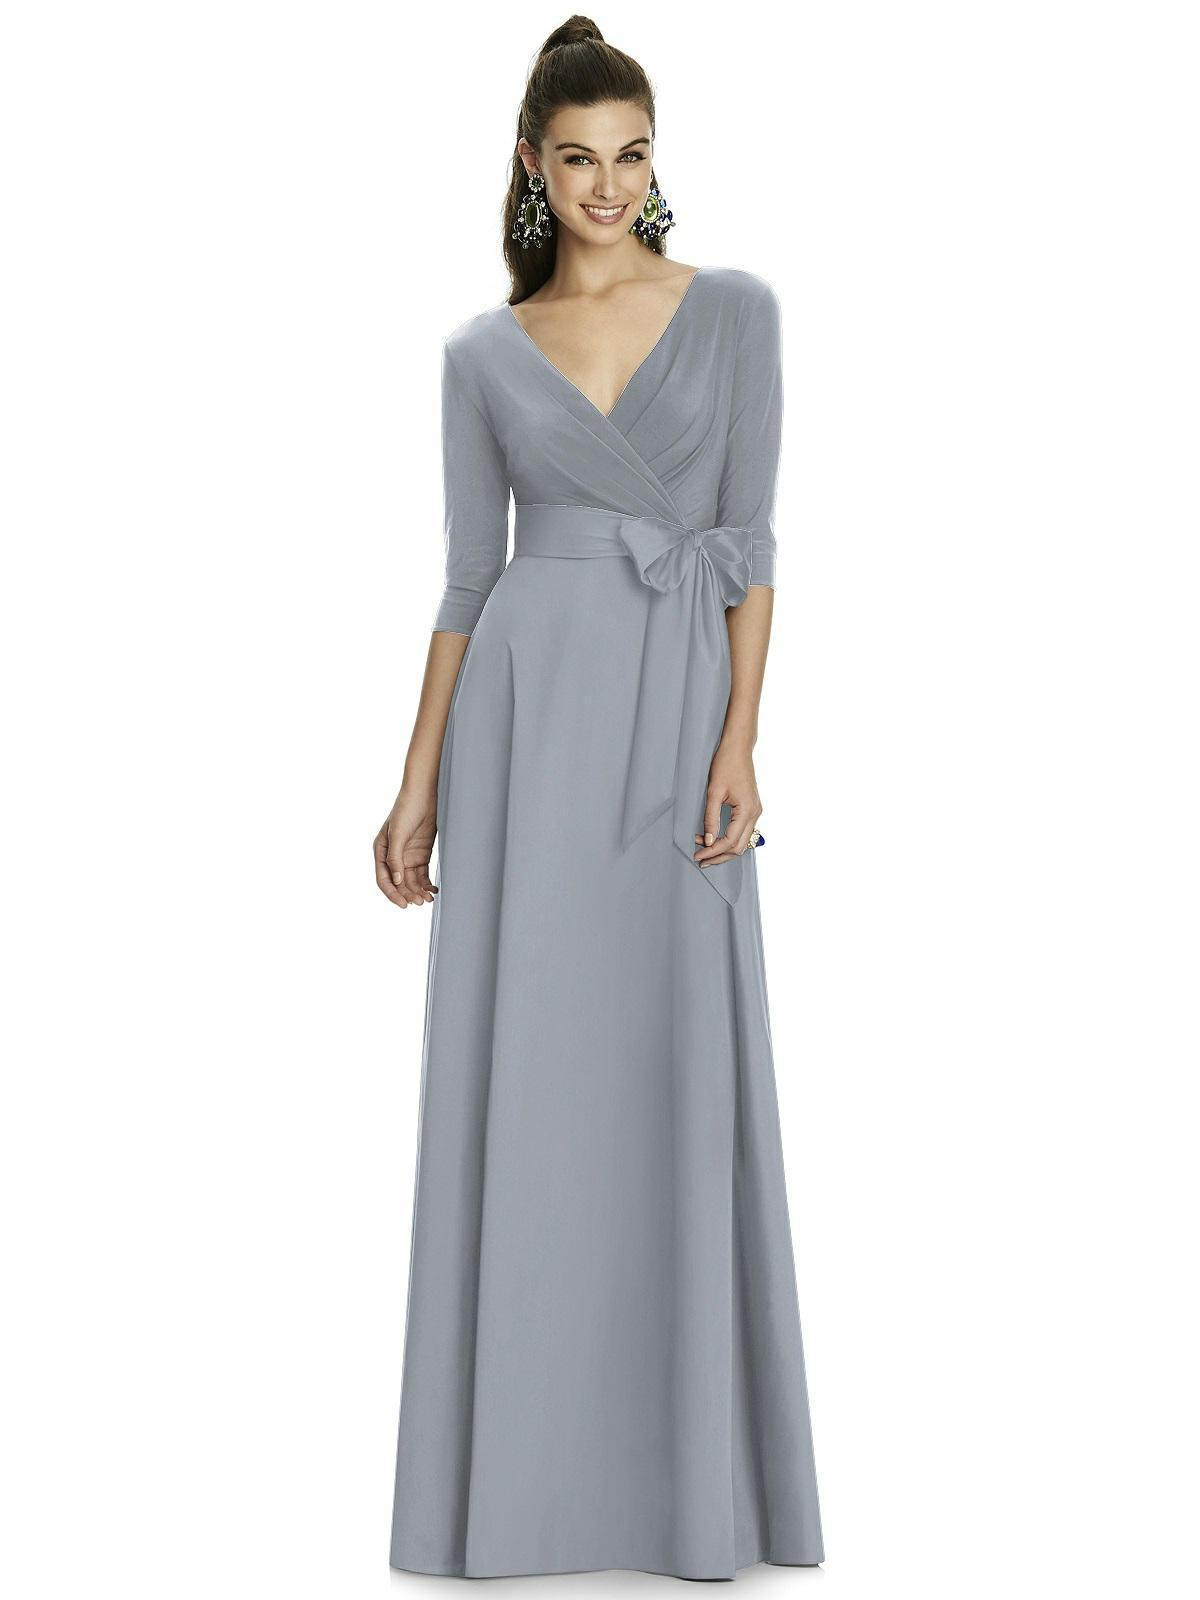 Alfred Sung - D736 Quarter Sleeve V Neck Long Formal Dress with Sash In Silver and Gray